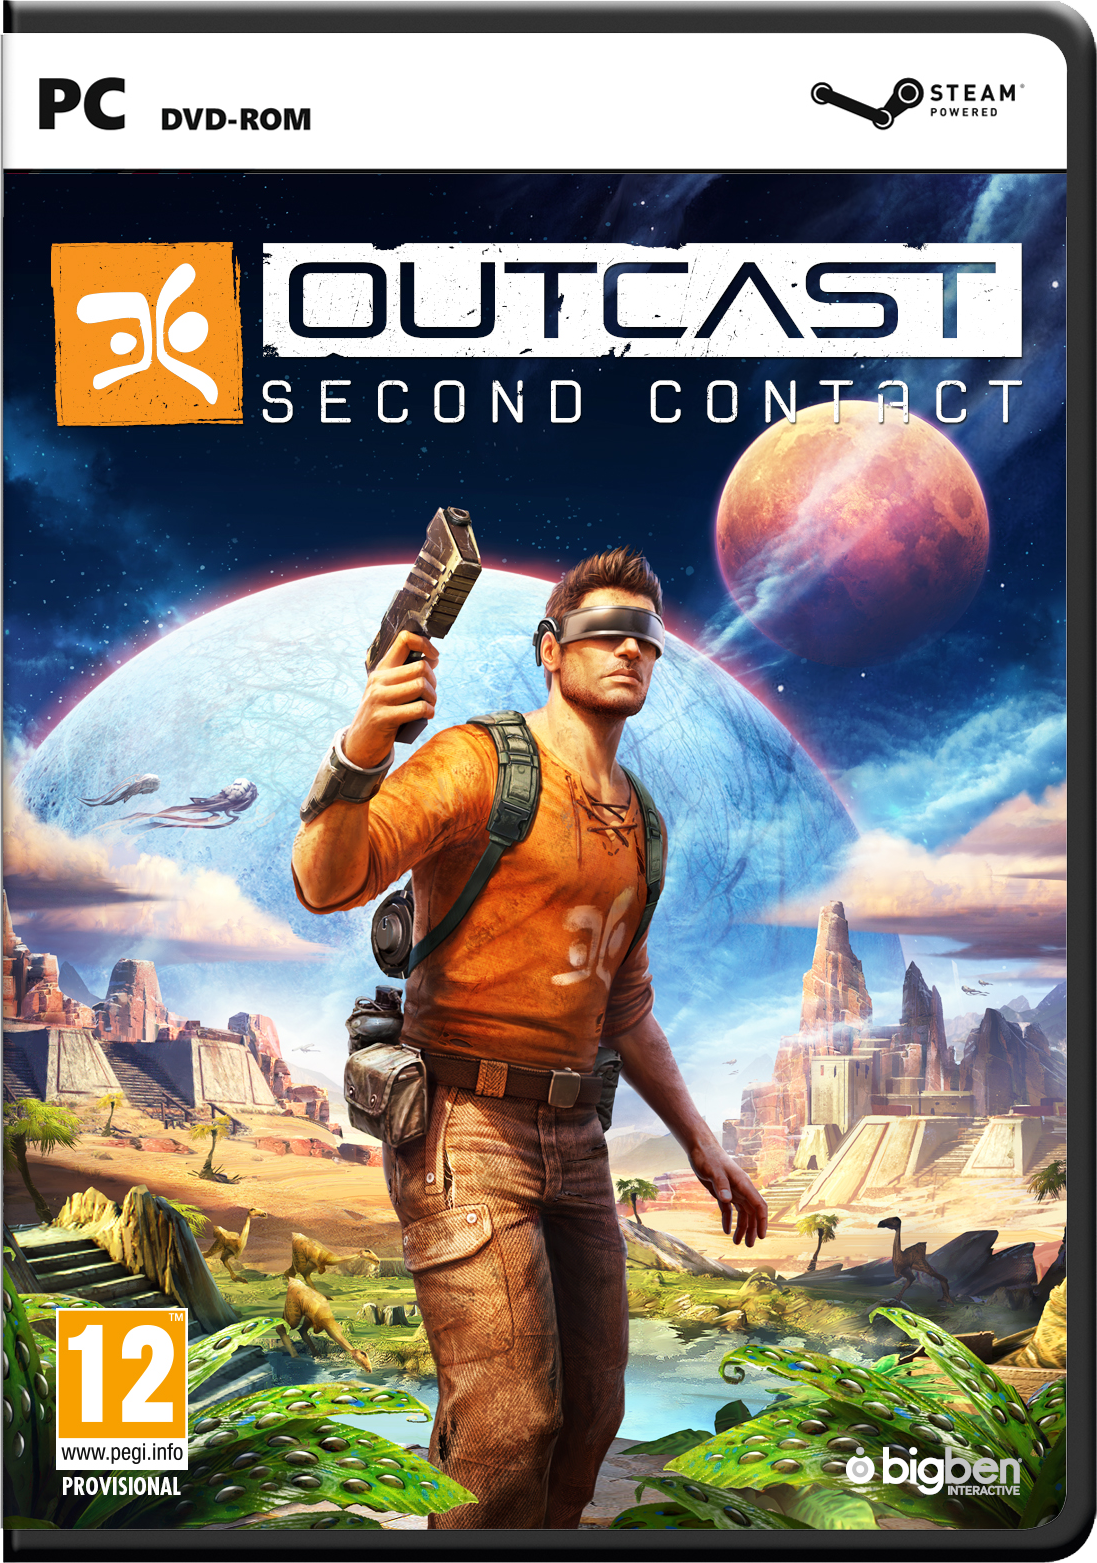 OUTCAST - Second Contact, PC